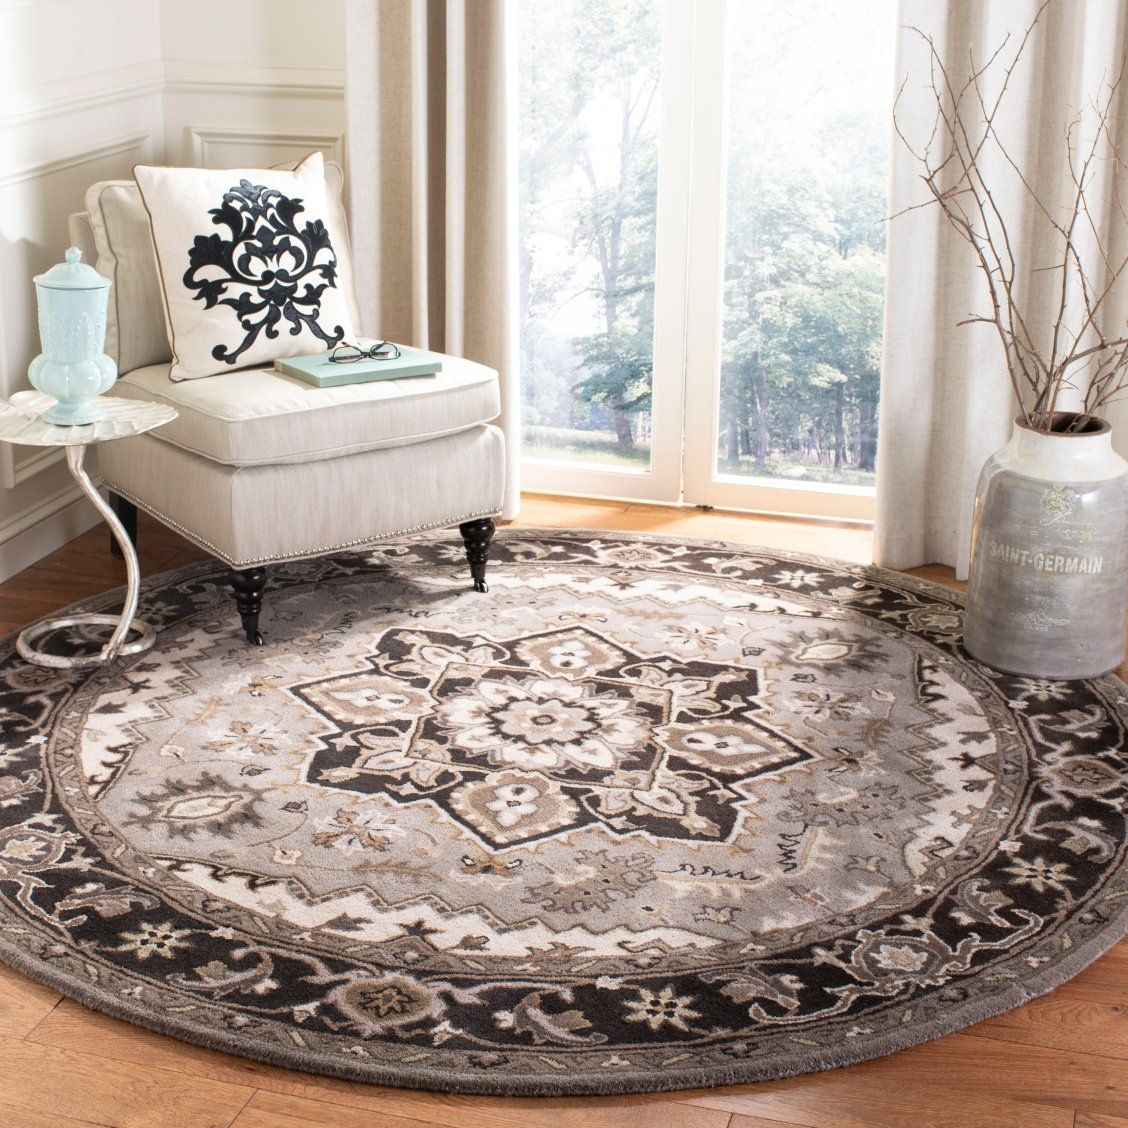 The Royalty Collection Features Brilliantly Styled Hand Tufted Wool Rugs This Collection Is Aptly Named As They Truly Oriental Wool Rugs Rugs Exquisite Rugs